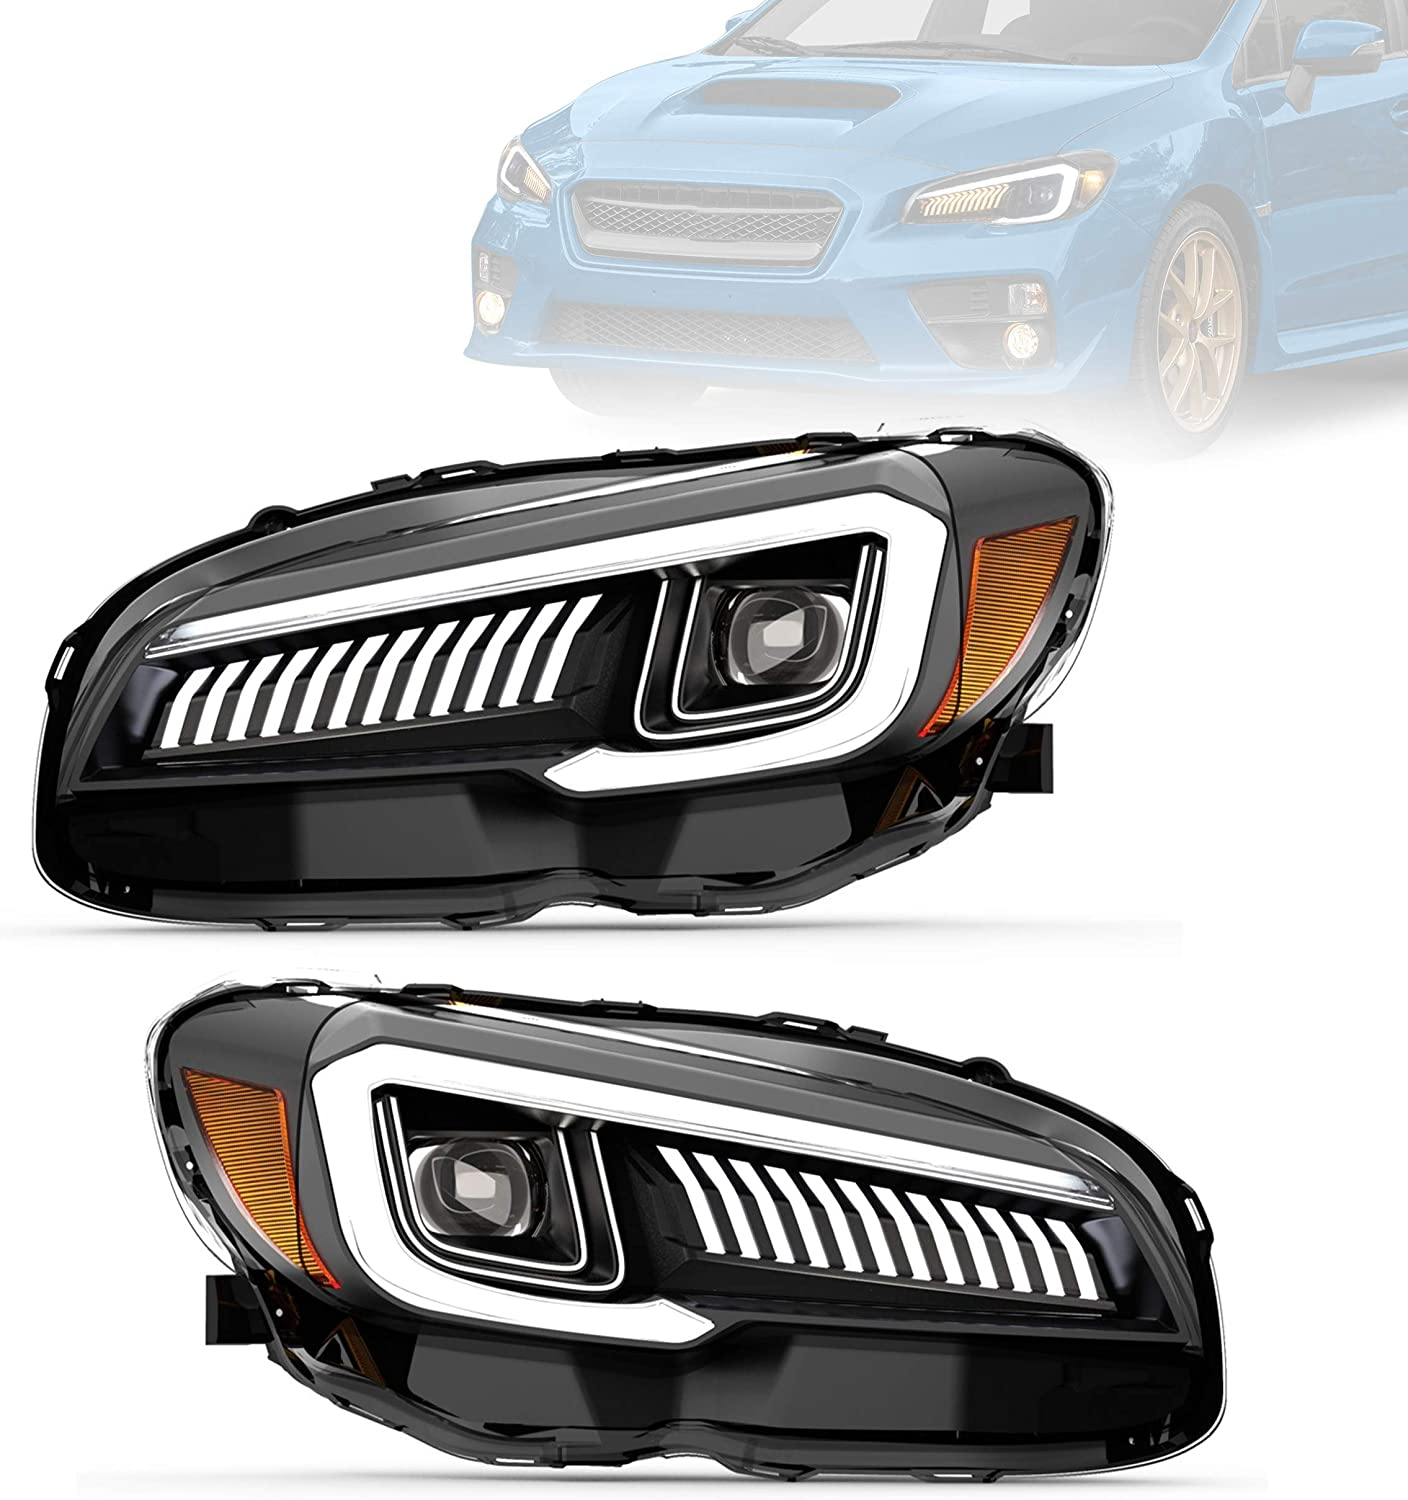 VLAND Headlight Assembly Max 45% OFF Fit for Subaru 2016 2017S Large special price STI WRX 2015